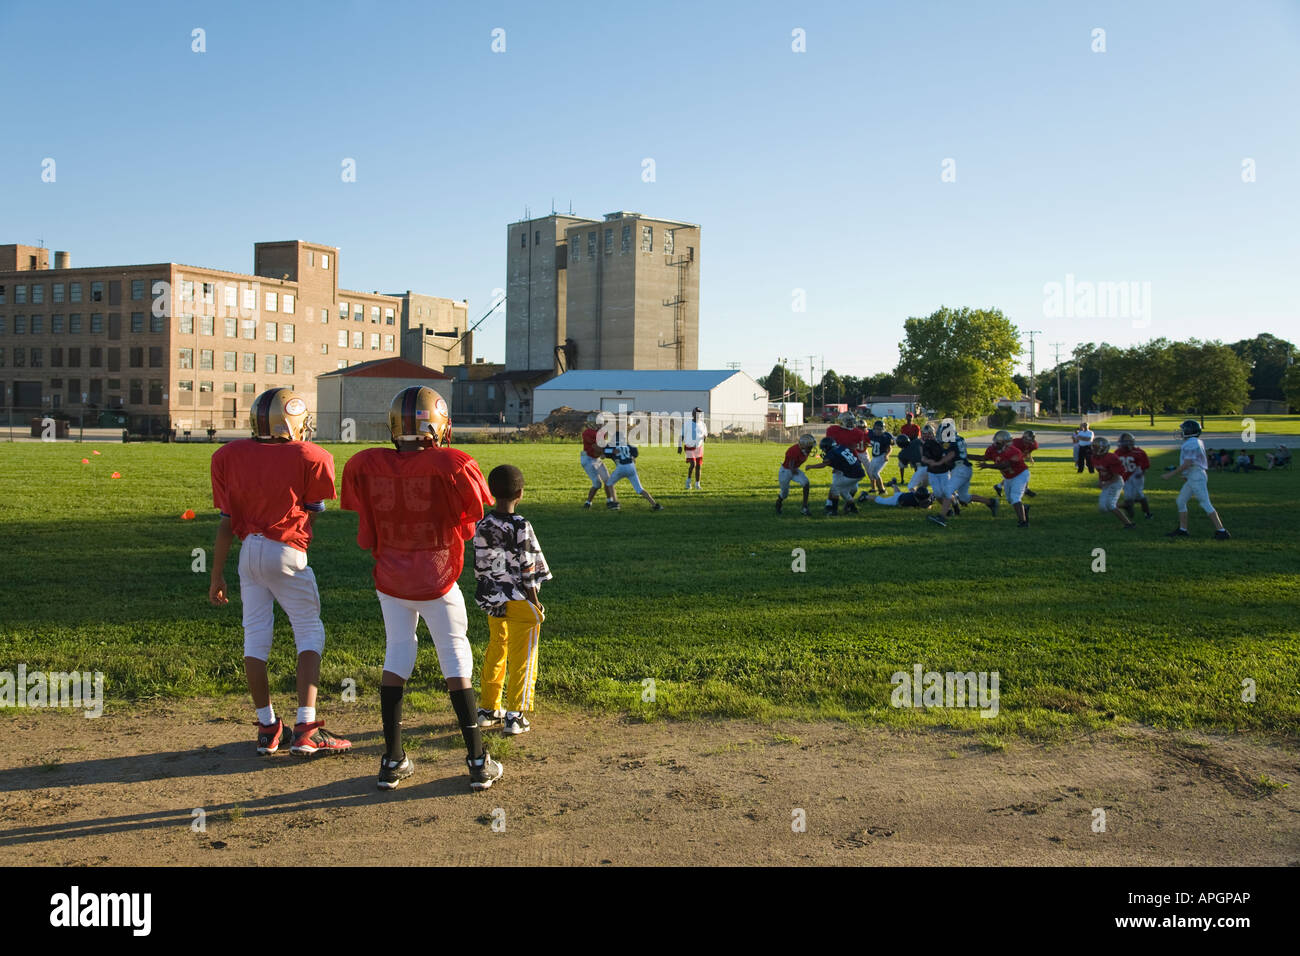 WISCONSIN Racine Two boys in football uniforms watching game in field junior high students playing - Stock Image